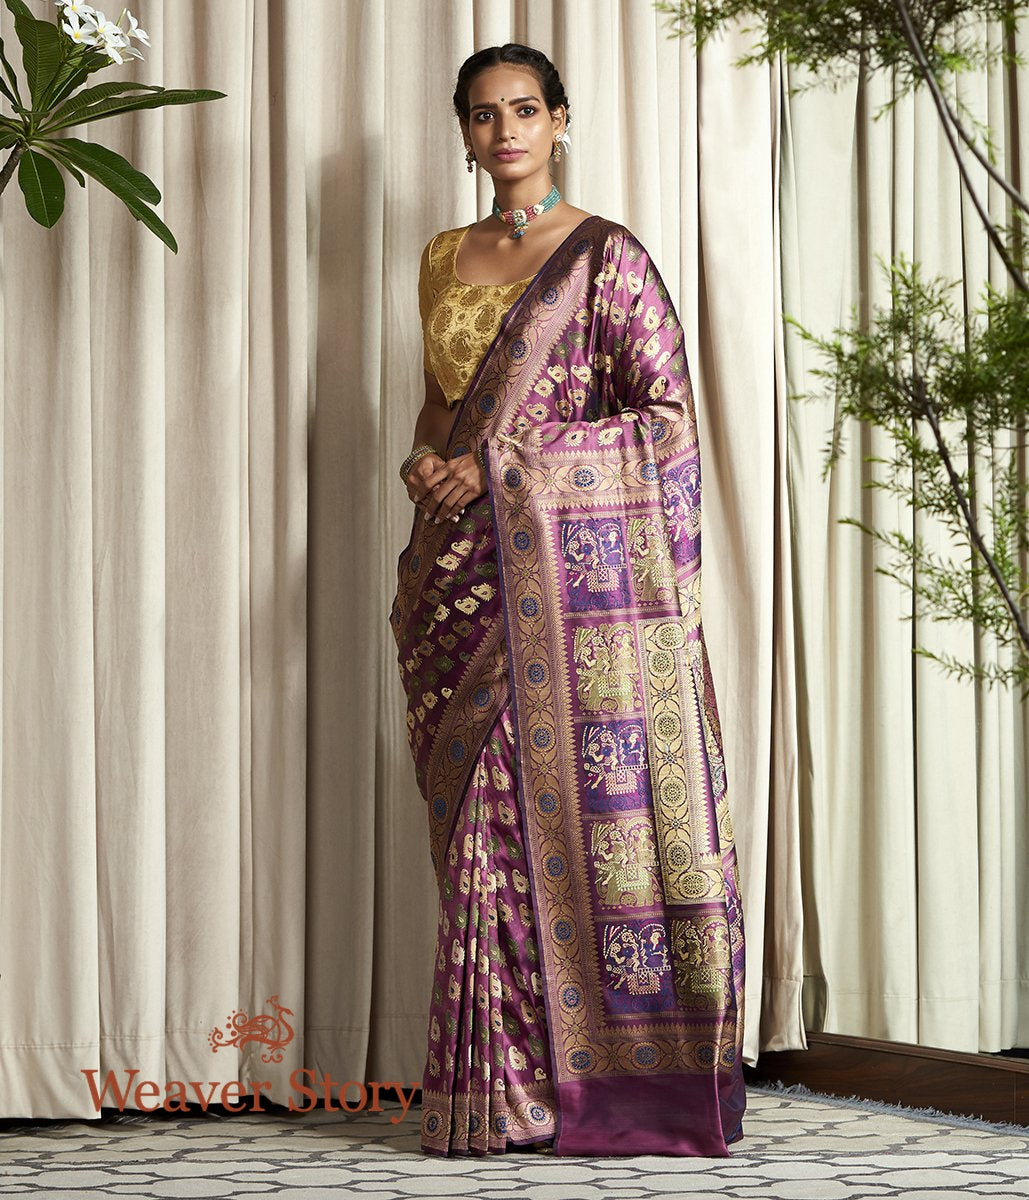 Handwoven Mauve Banaras Baluchari Saree with Elephant Pallu